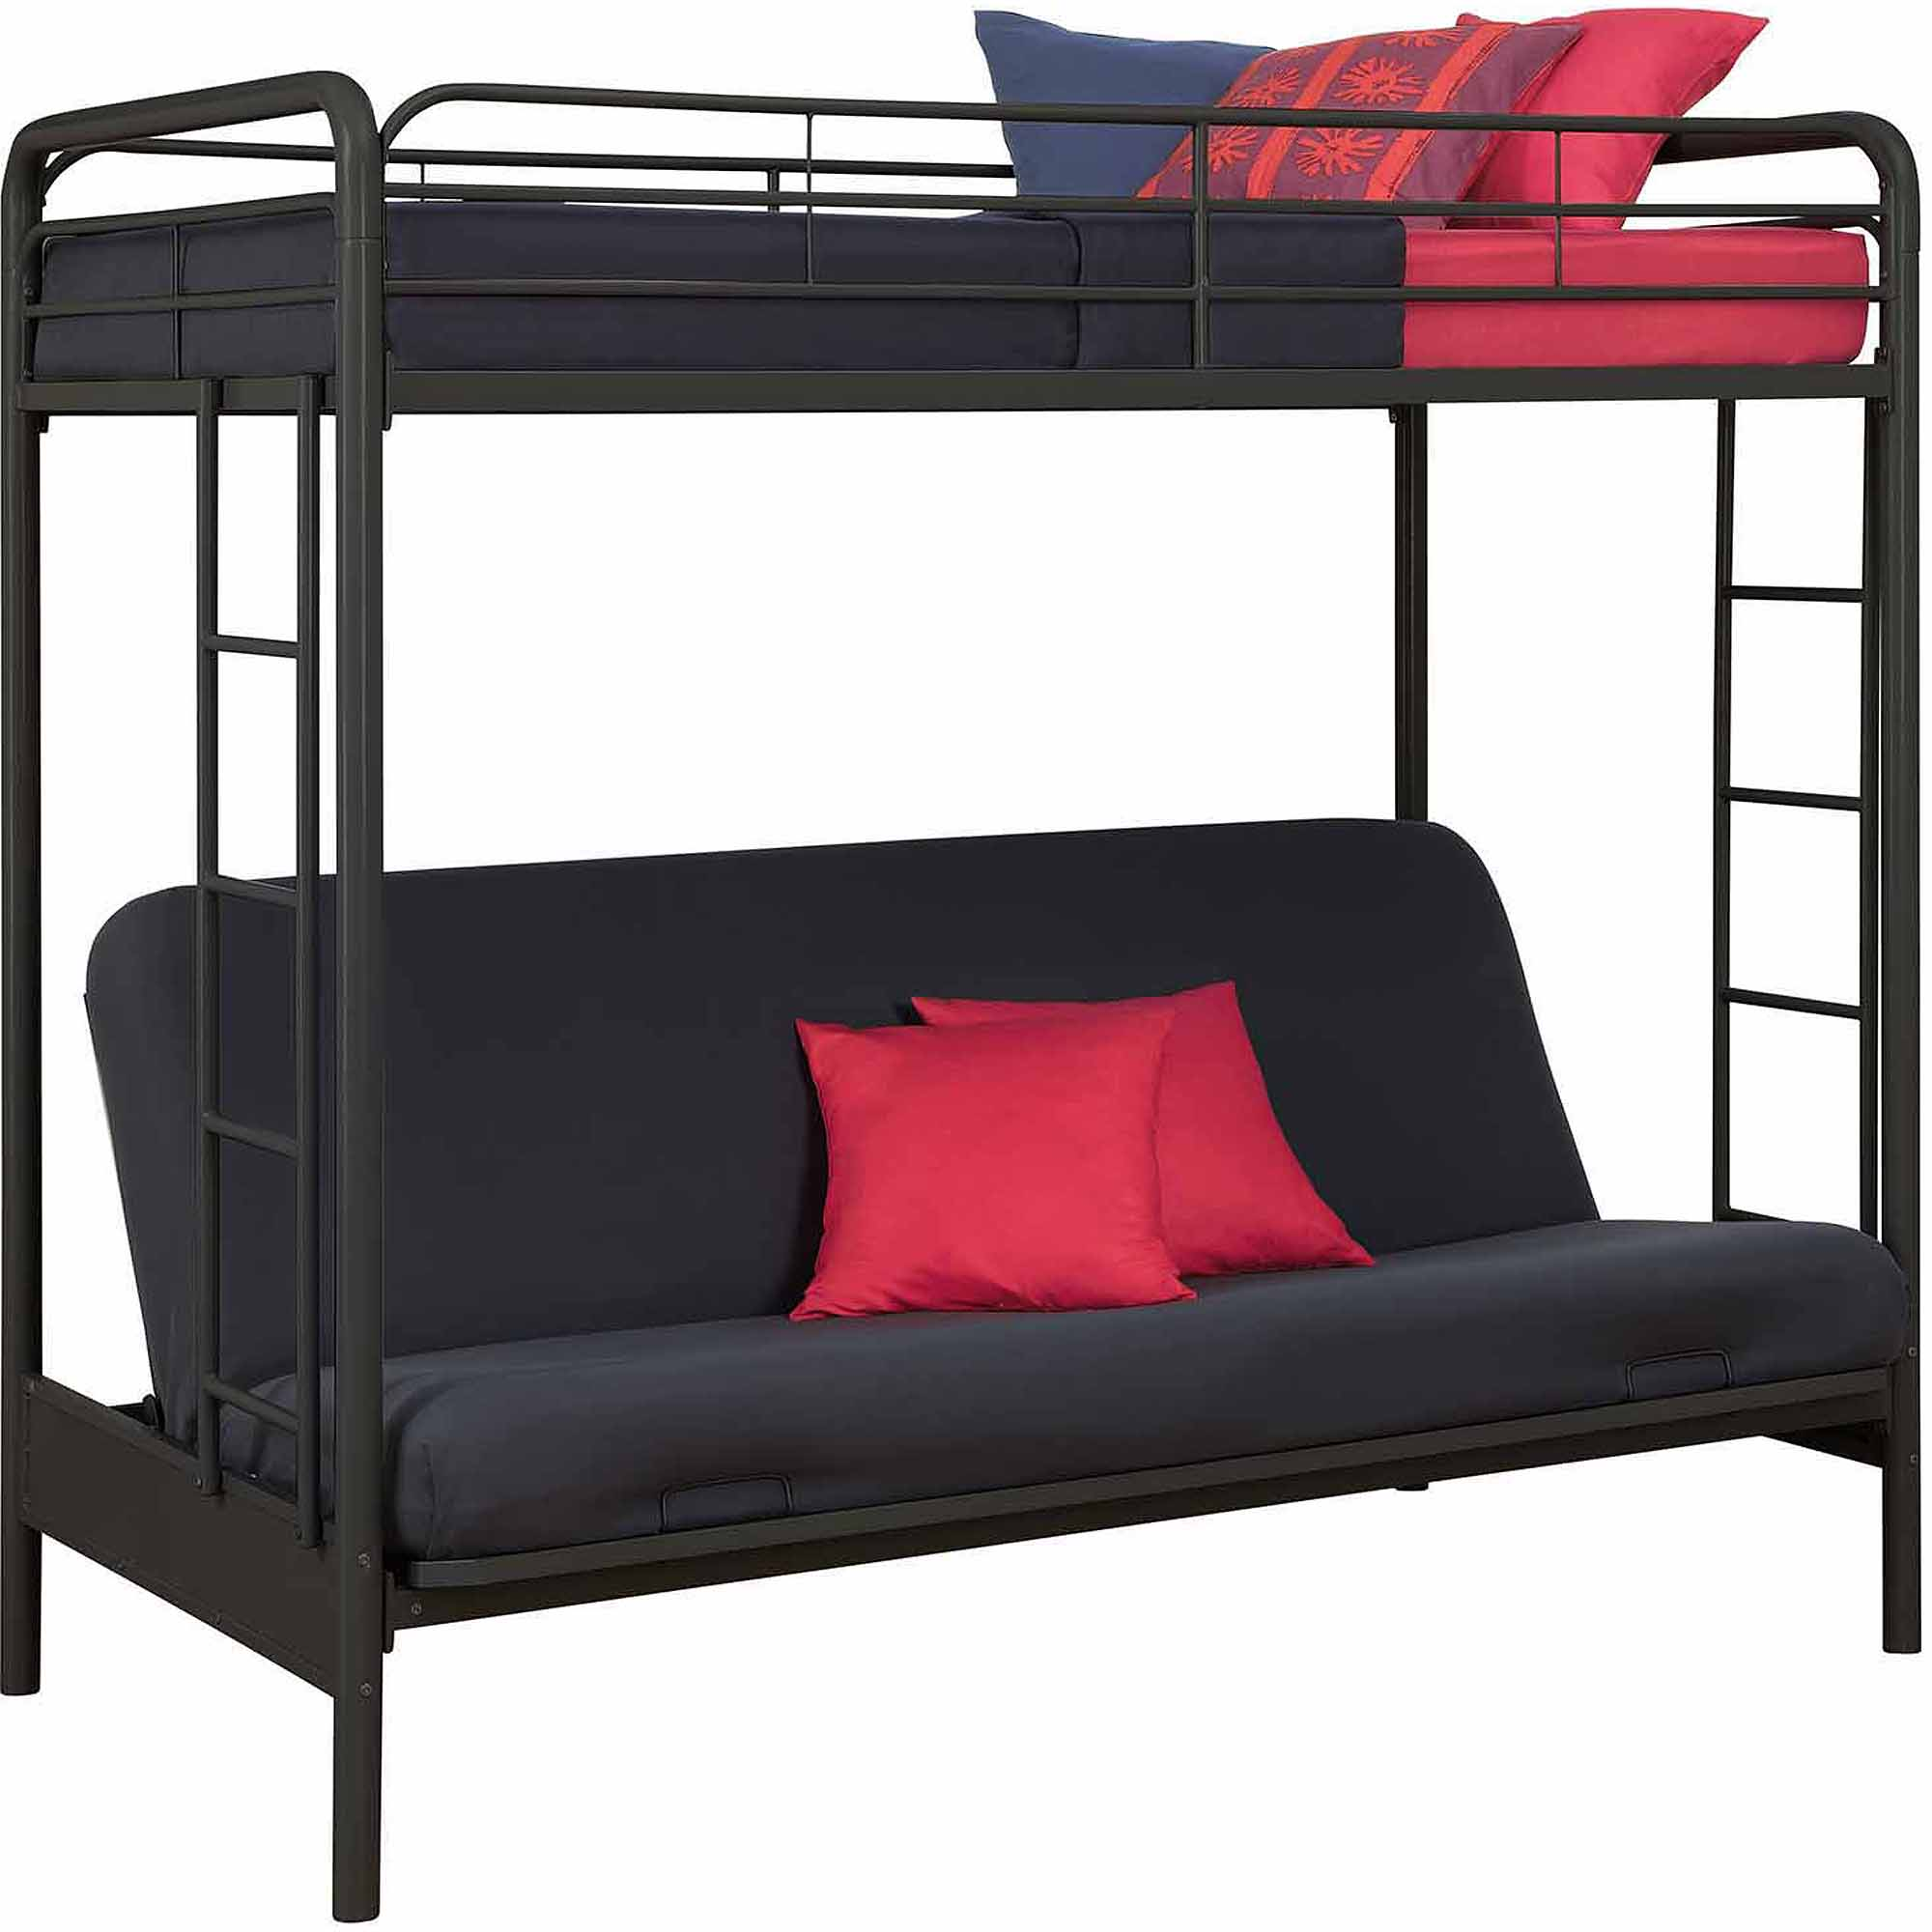 loft beds elegant awesome full twin wells futon living ideas masterly as for tripod size over of queen large room bed bunk sale